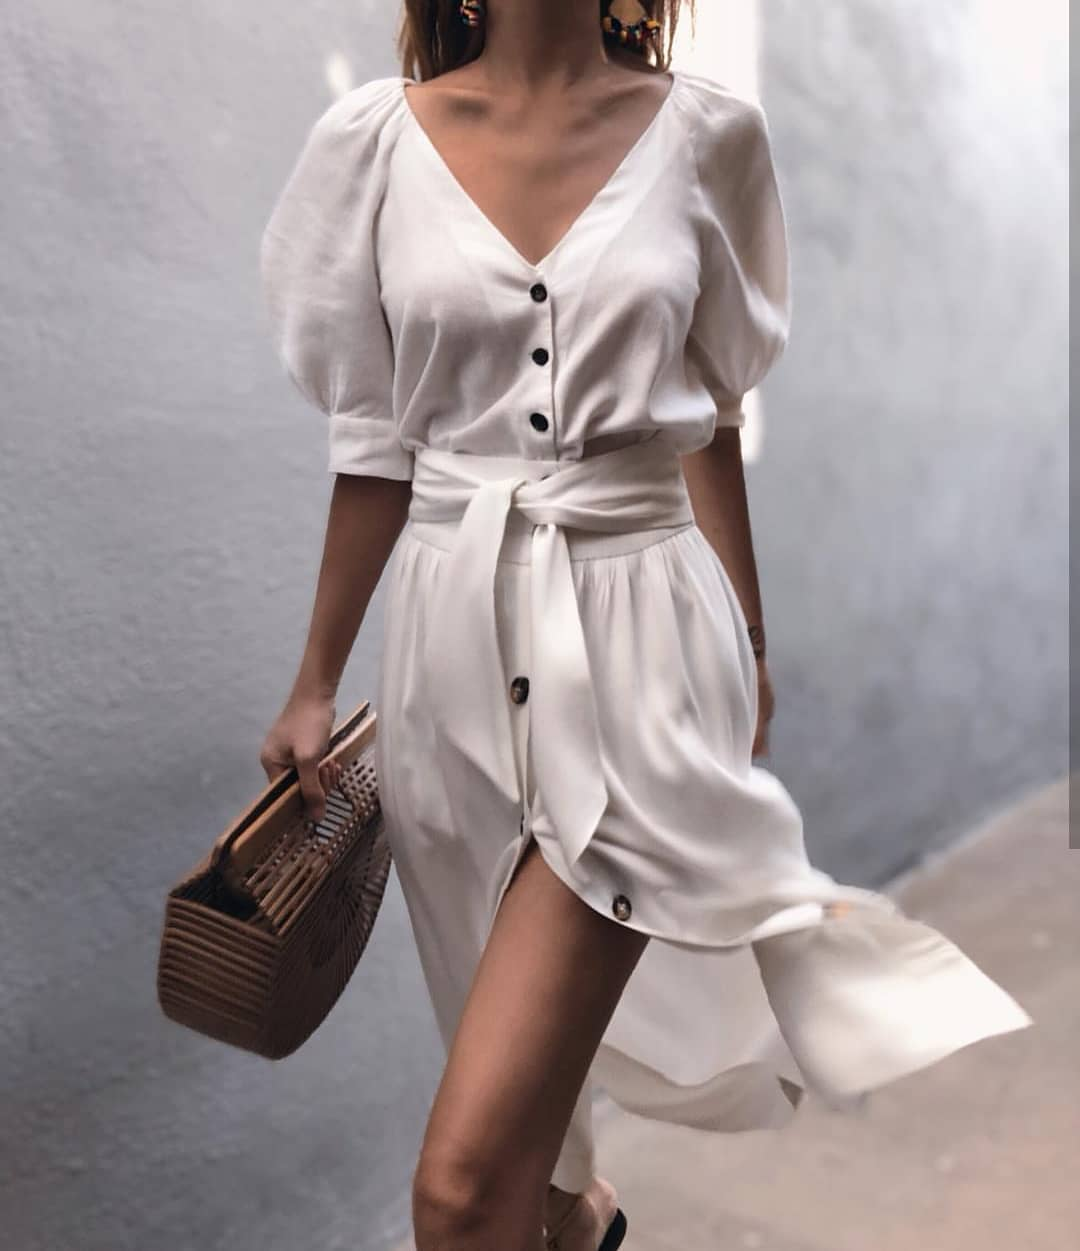 Belted Shirtdress In White Color For Summer 2021